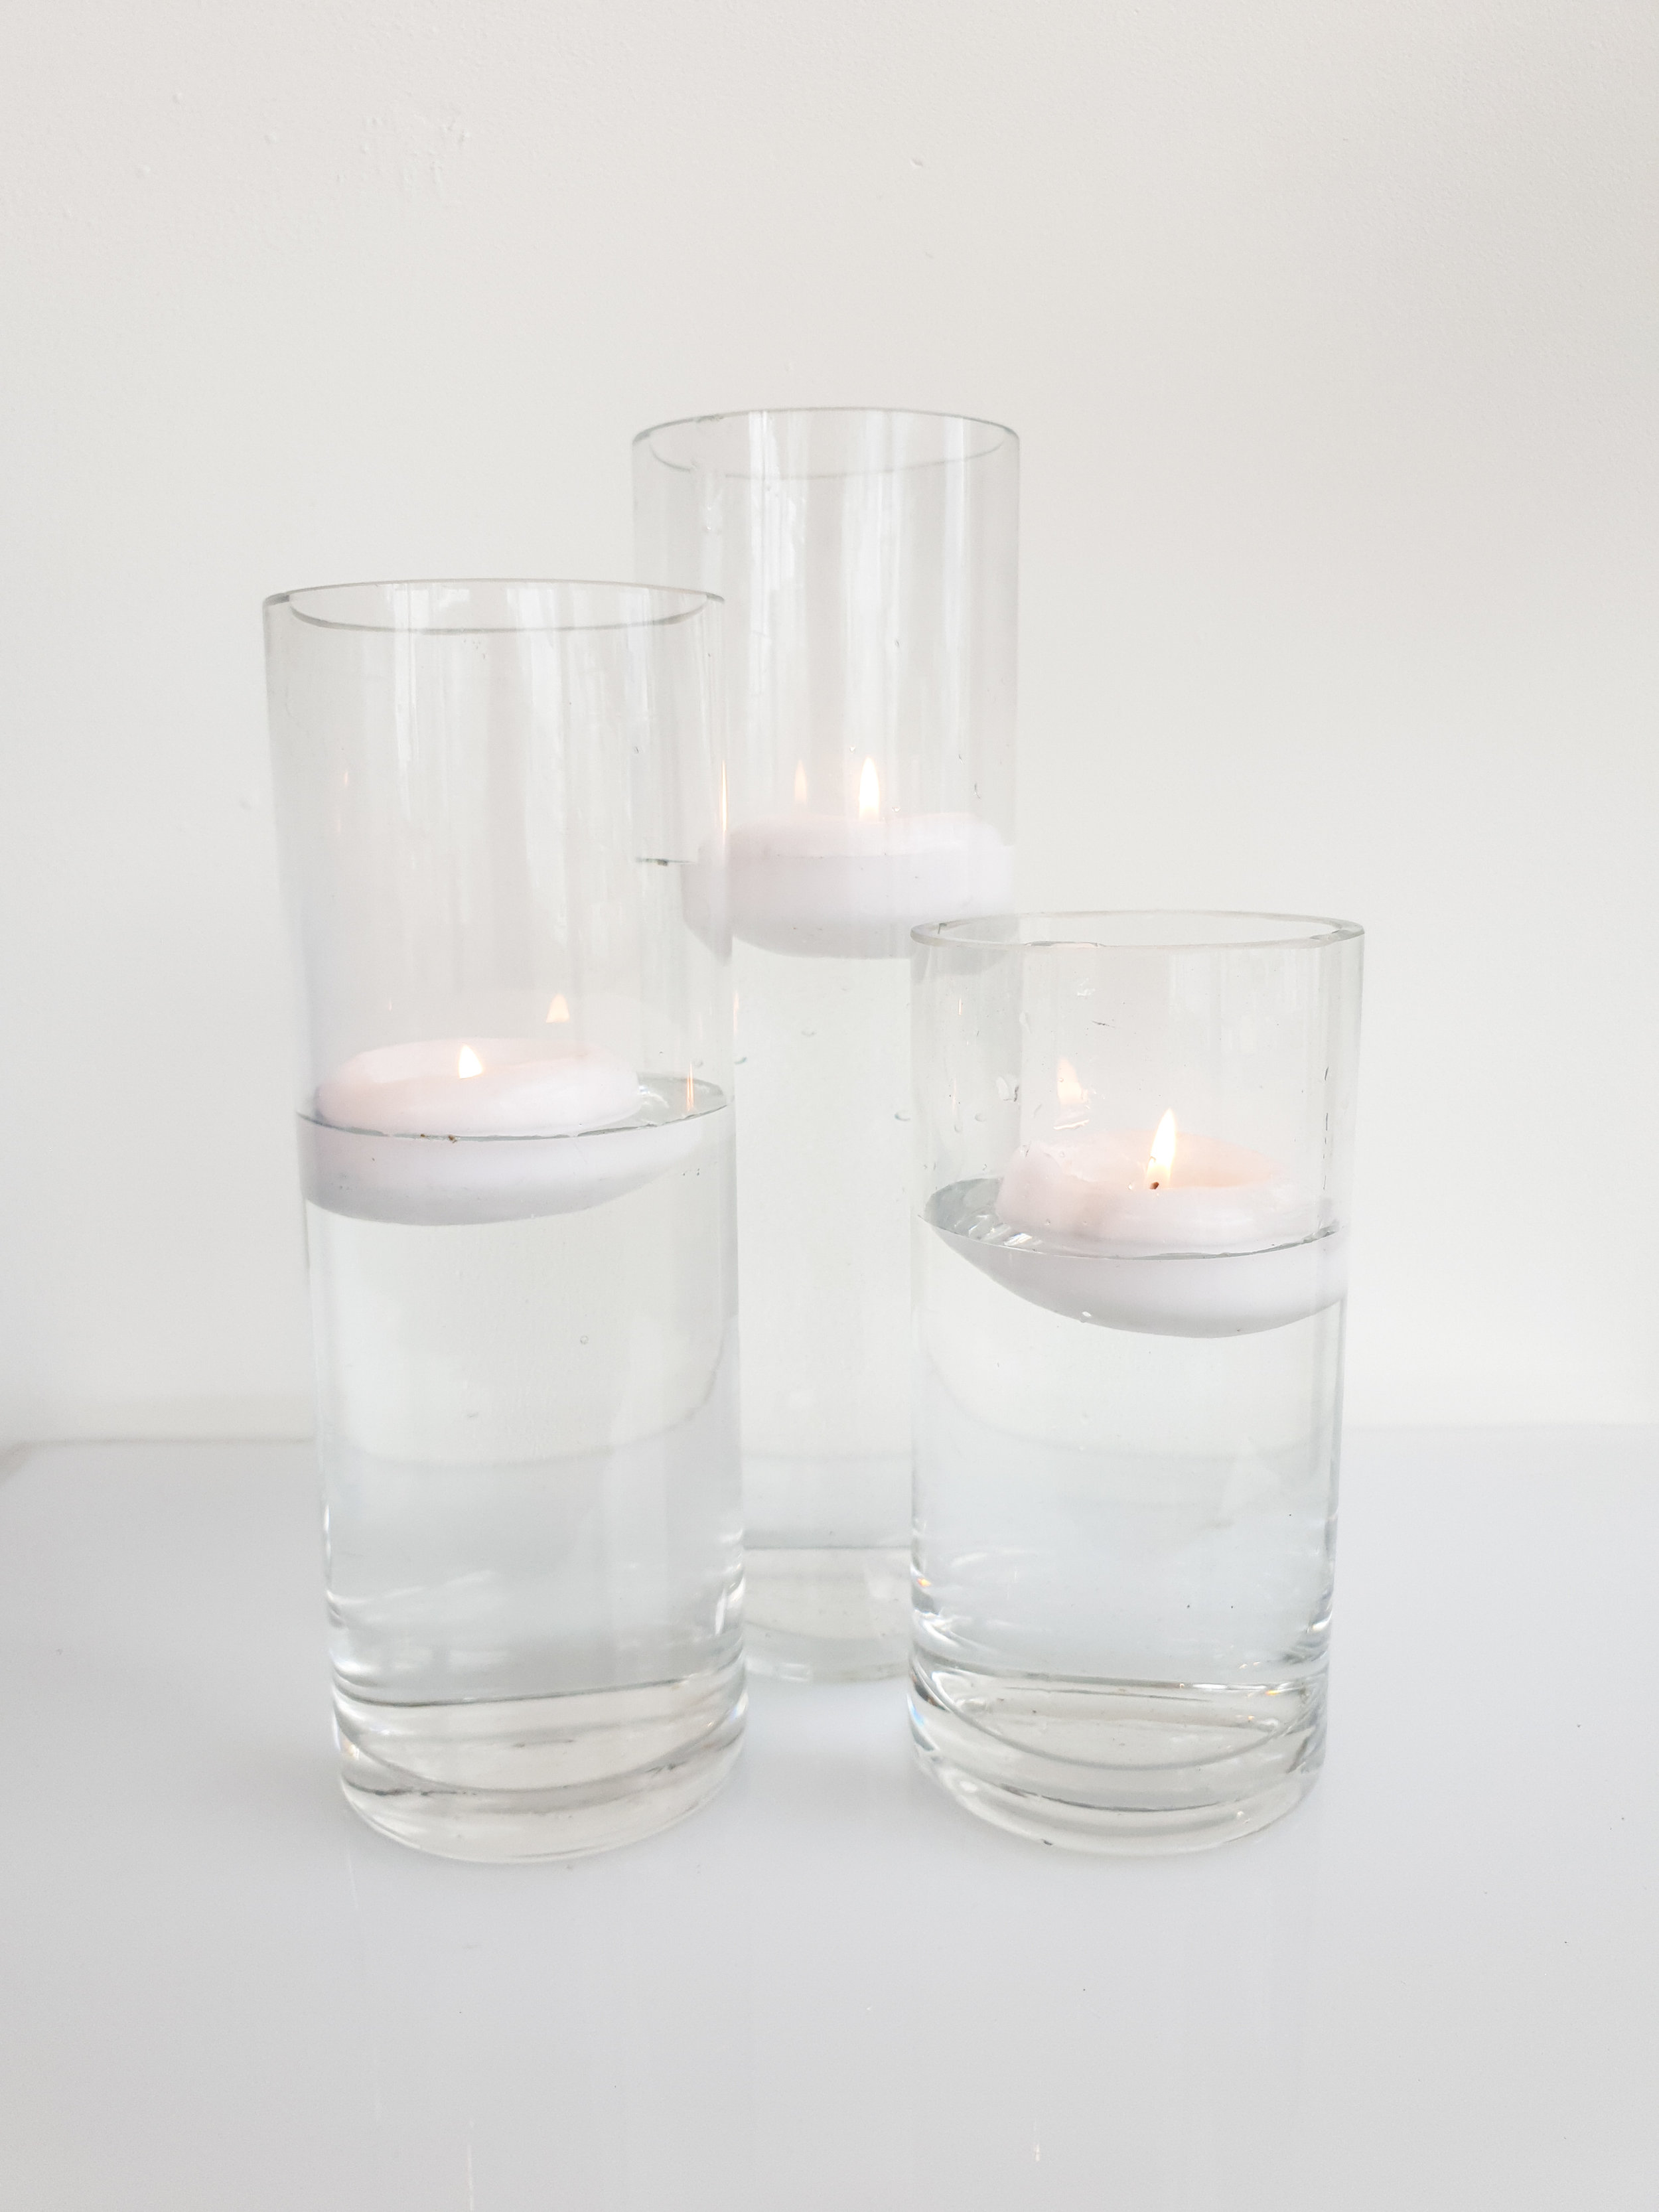 GLASS CYLINDER VASE WITH FLOATING CANDLE 20 CM H $8+GST 25 CM H $8+GST 30 CM H $10+GST 40 CM H $12+GST